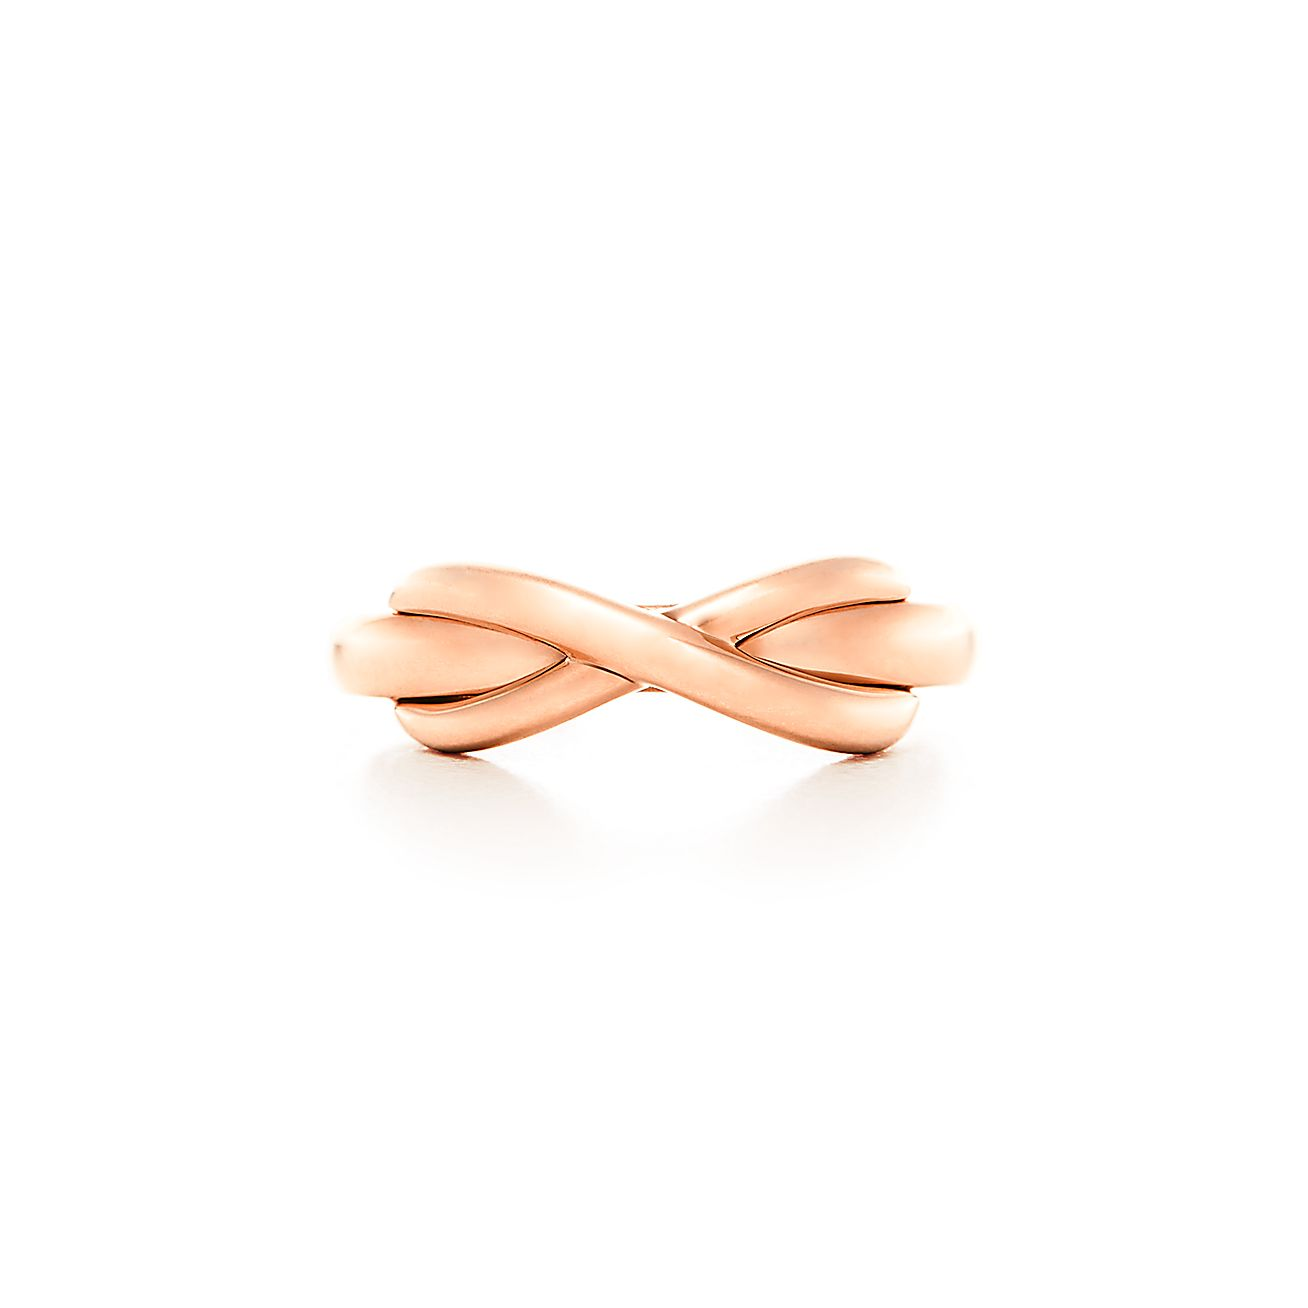 Tiffany Infinity ring in 18k rose gold. | Tiffany & Co.